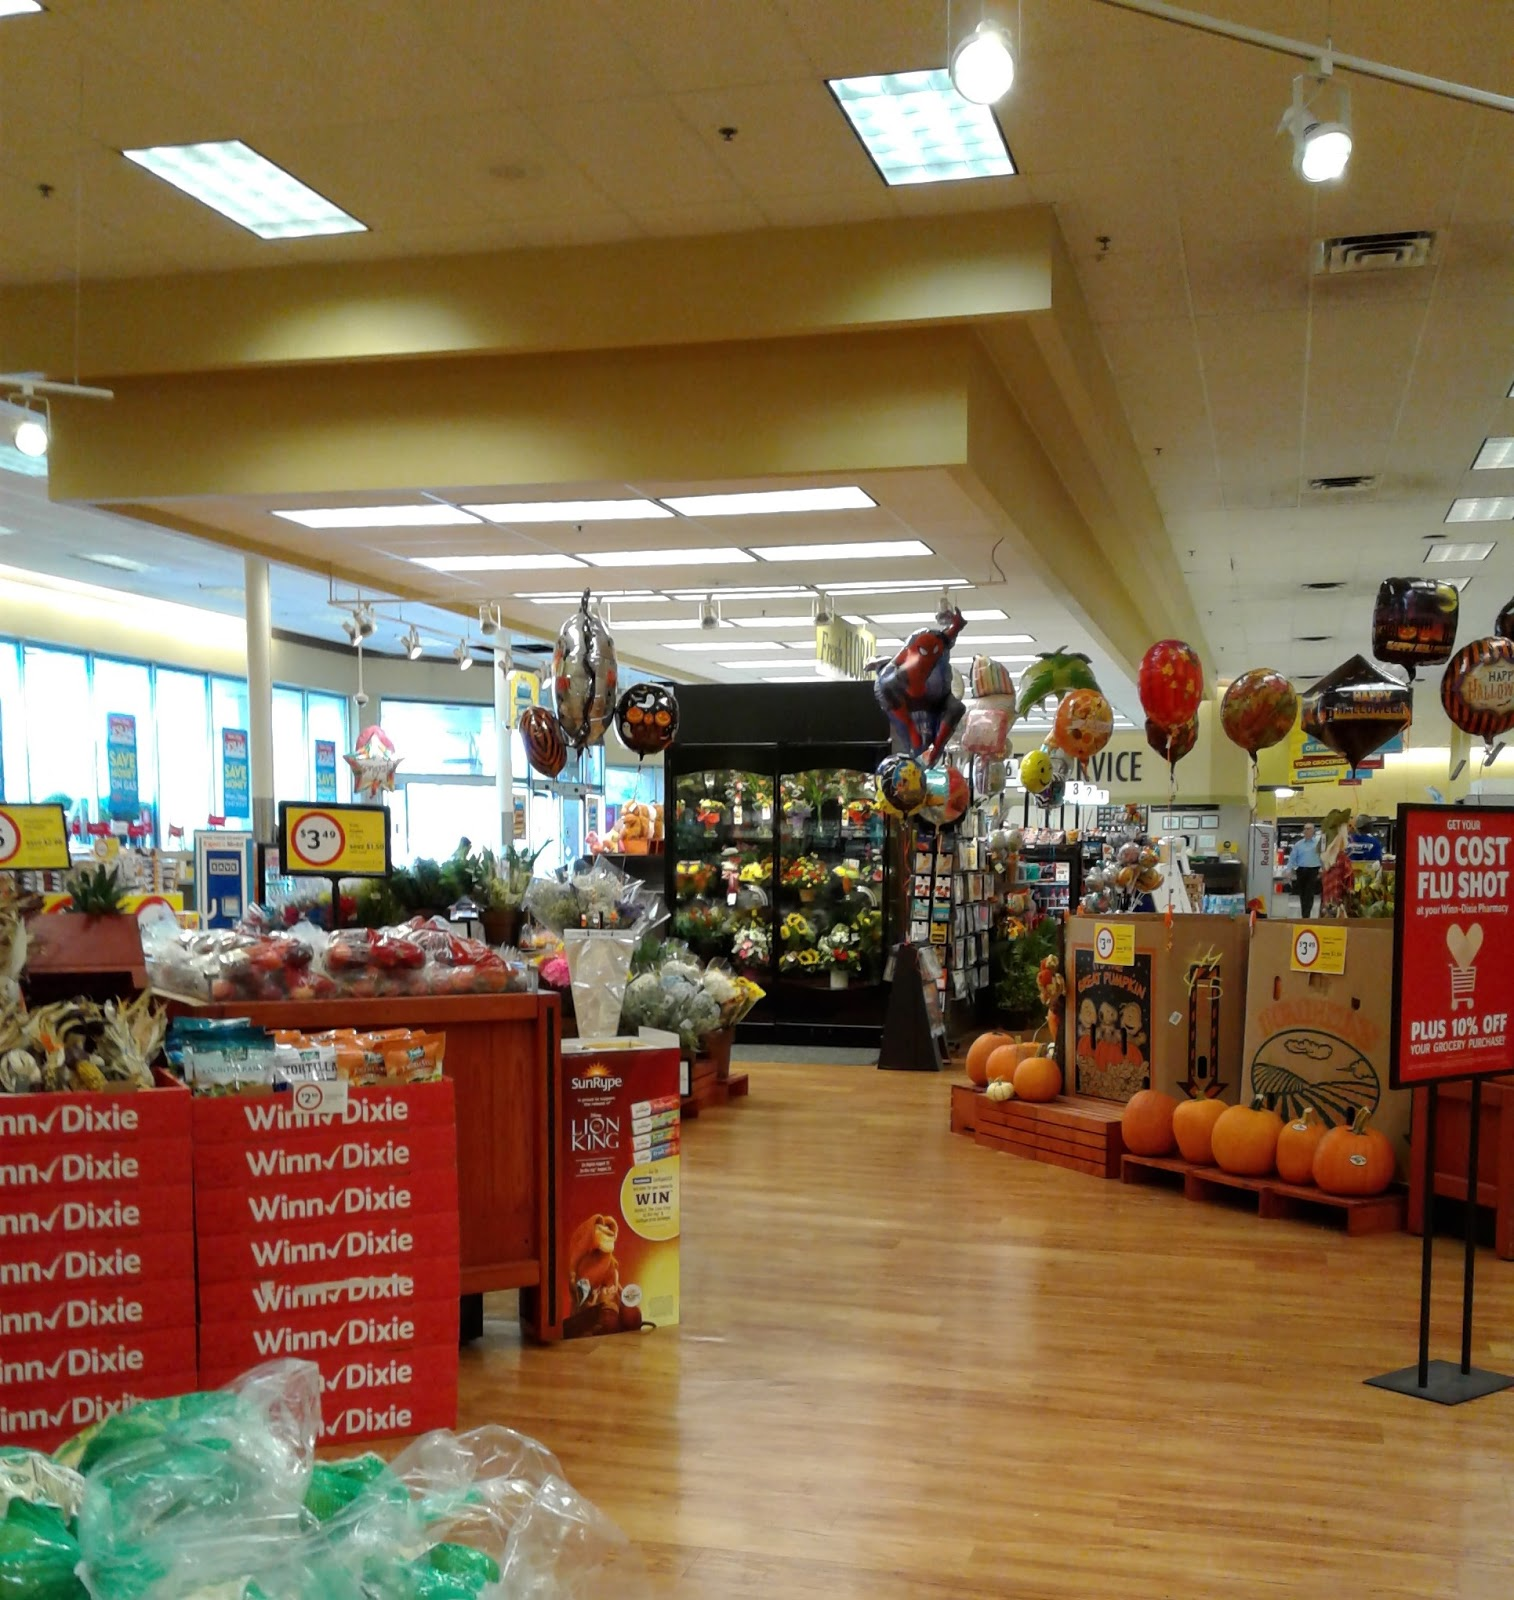 My Florida Retail Blog: Winn-Dixie #2354 - Sebastian, FL